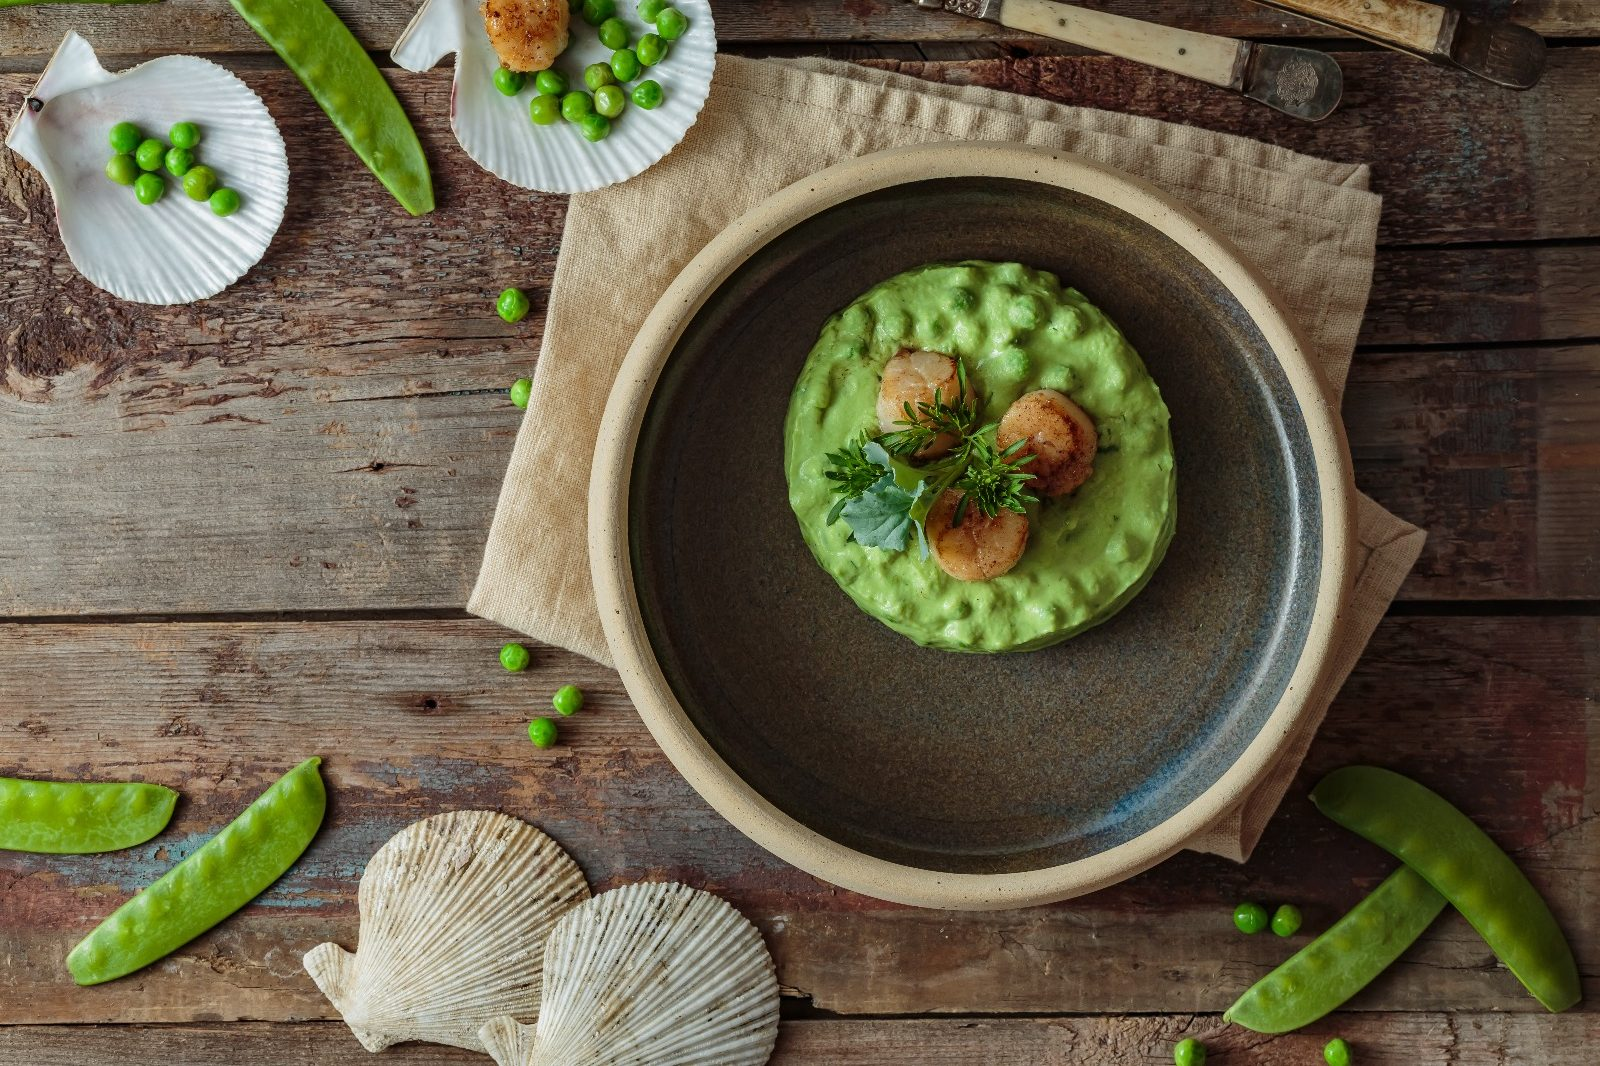 Pan Sear Sea Scallops - A Luxurious And Flavorful Meal - Beck & Bulow